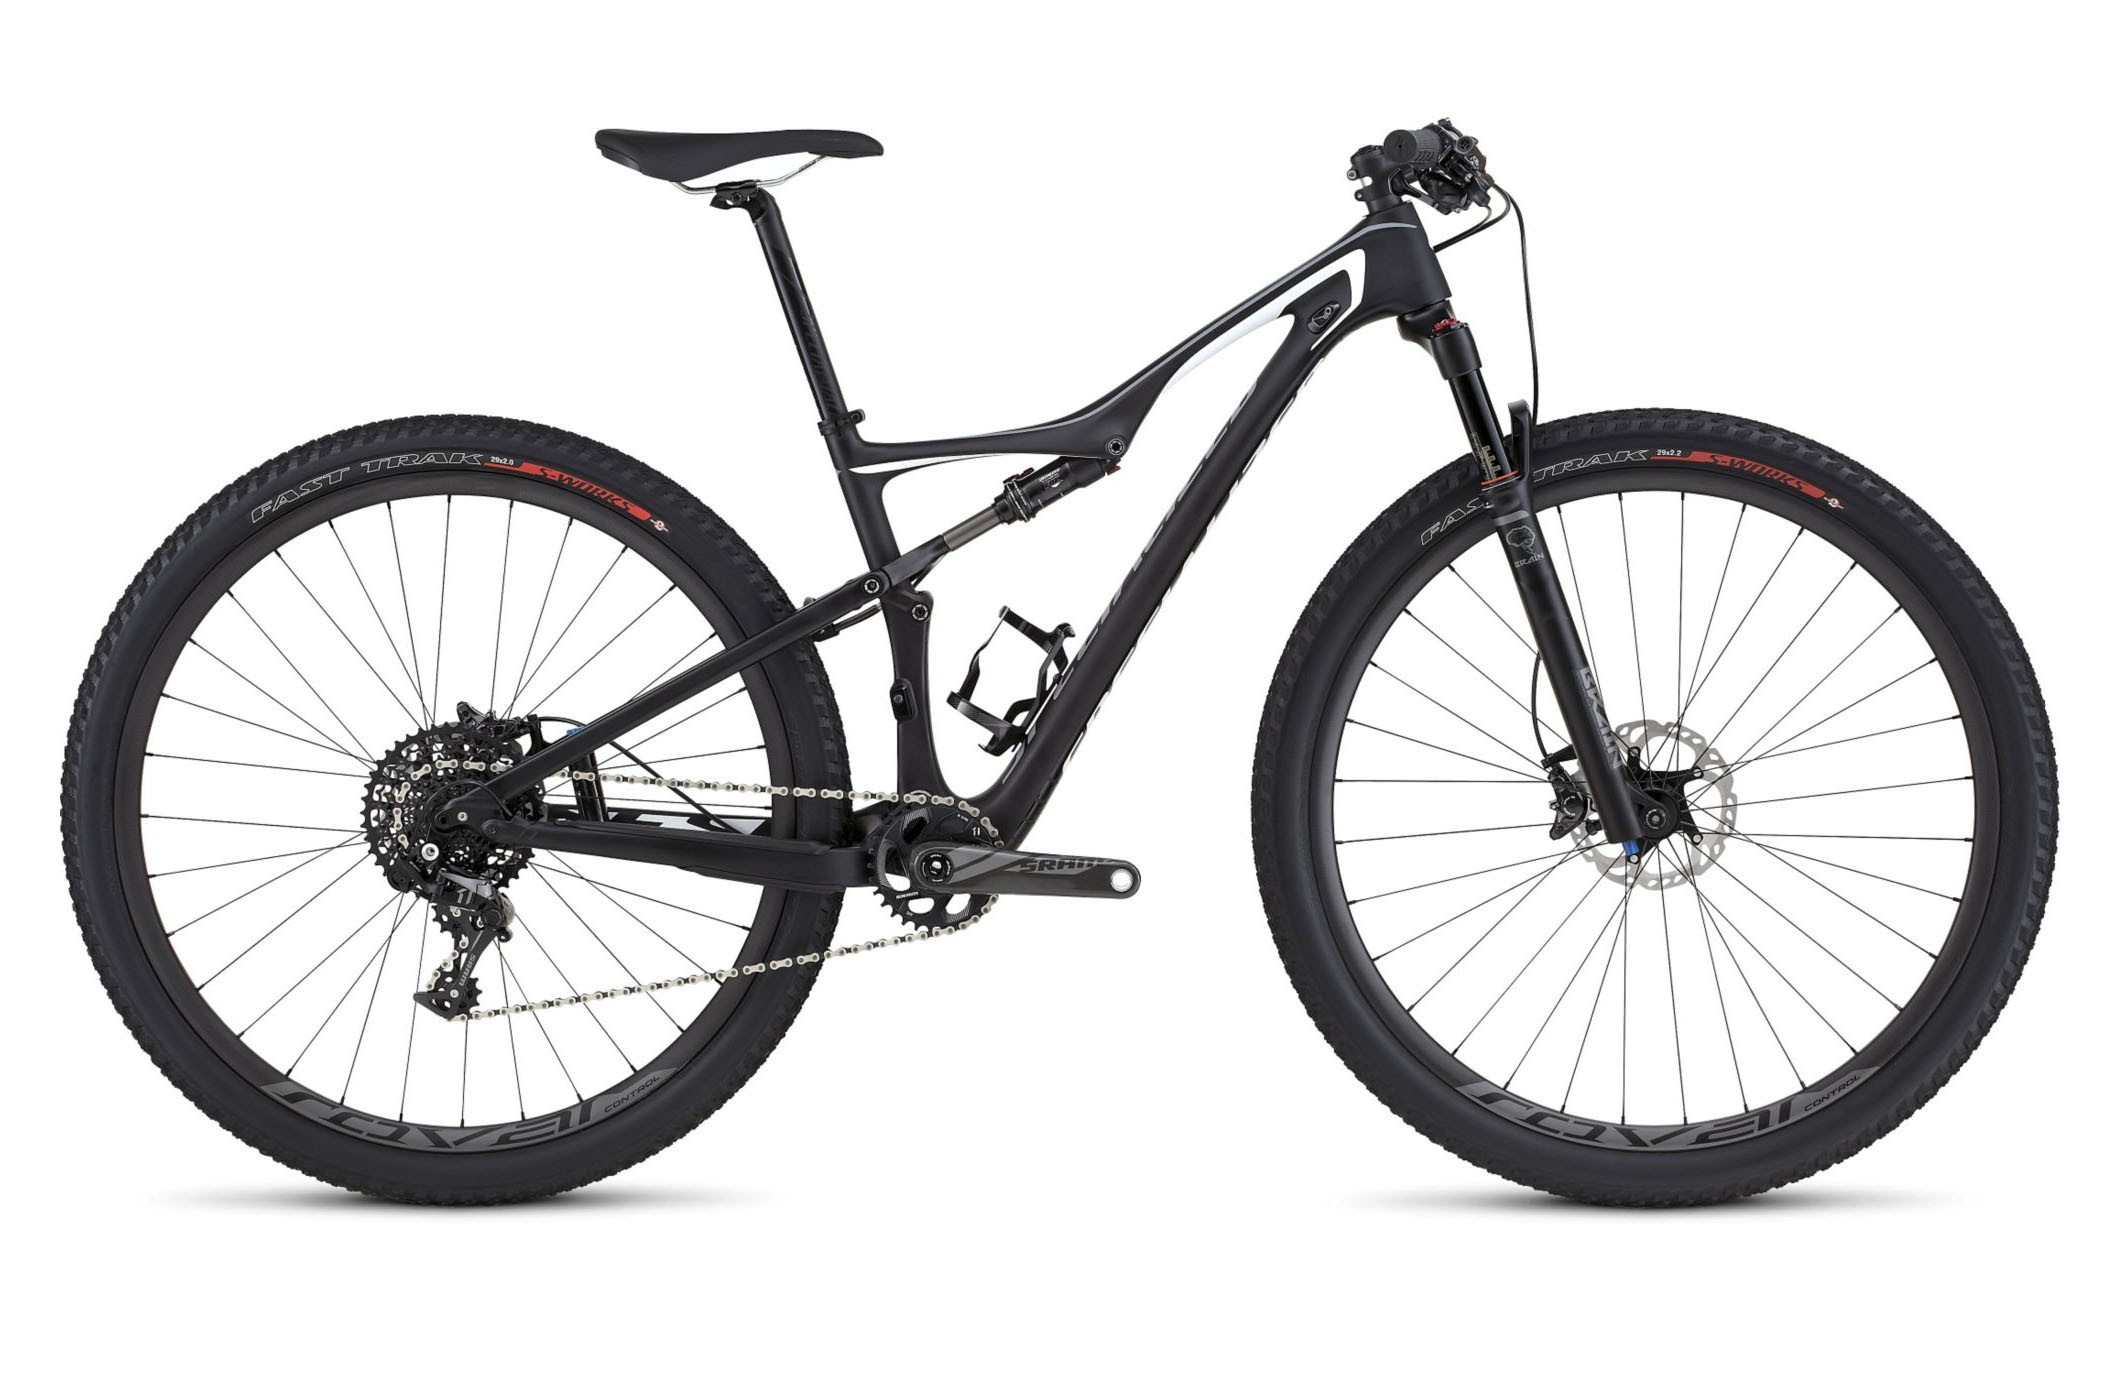 Горный велосипед Specialized Era Expert Carbon 29 (2016)